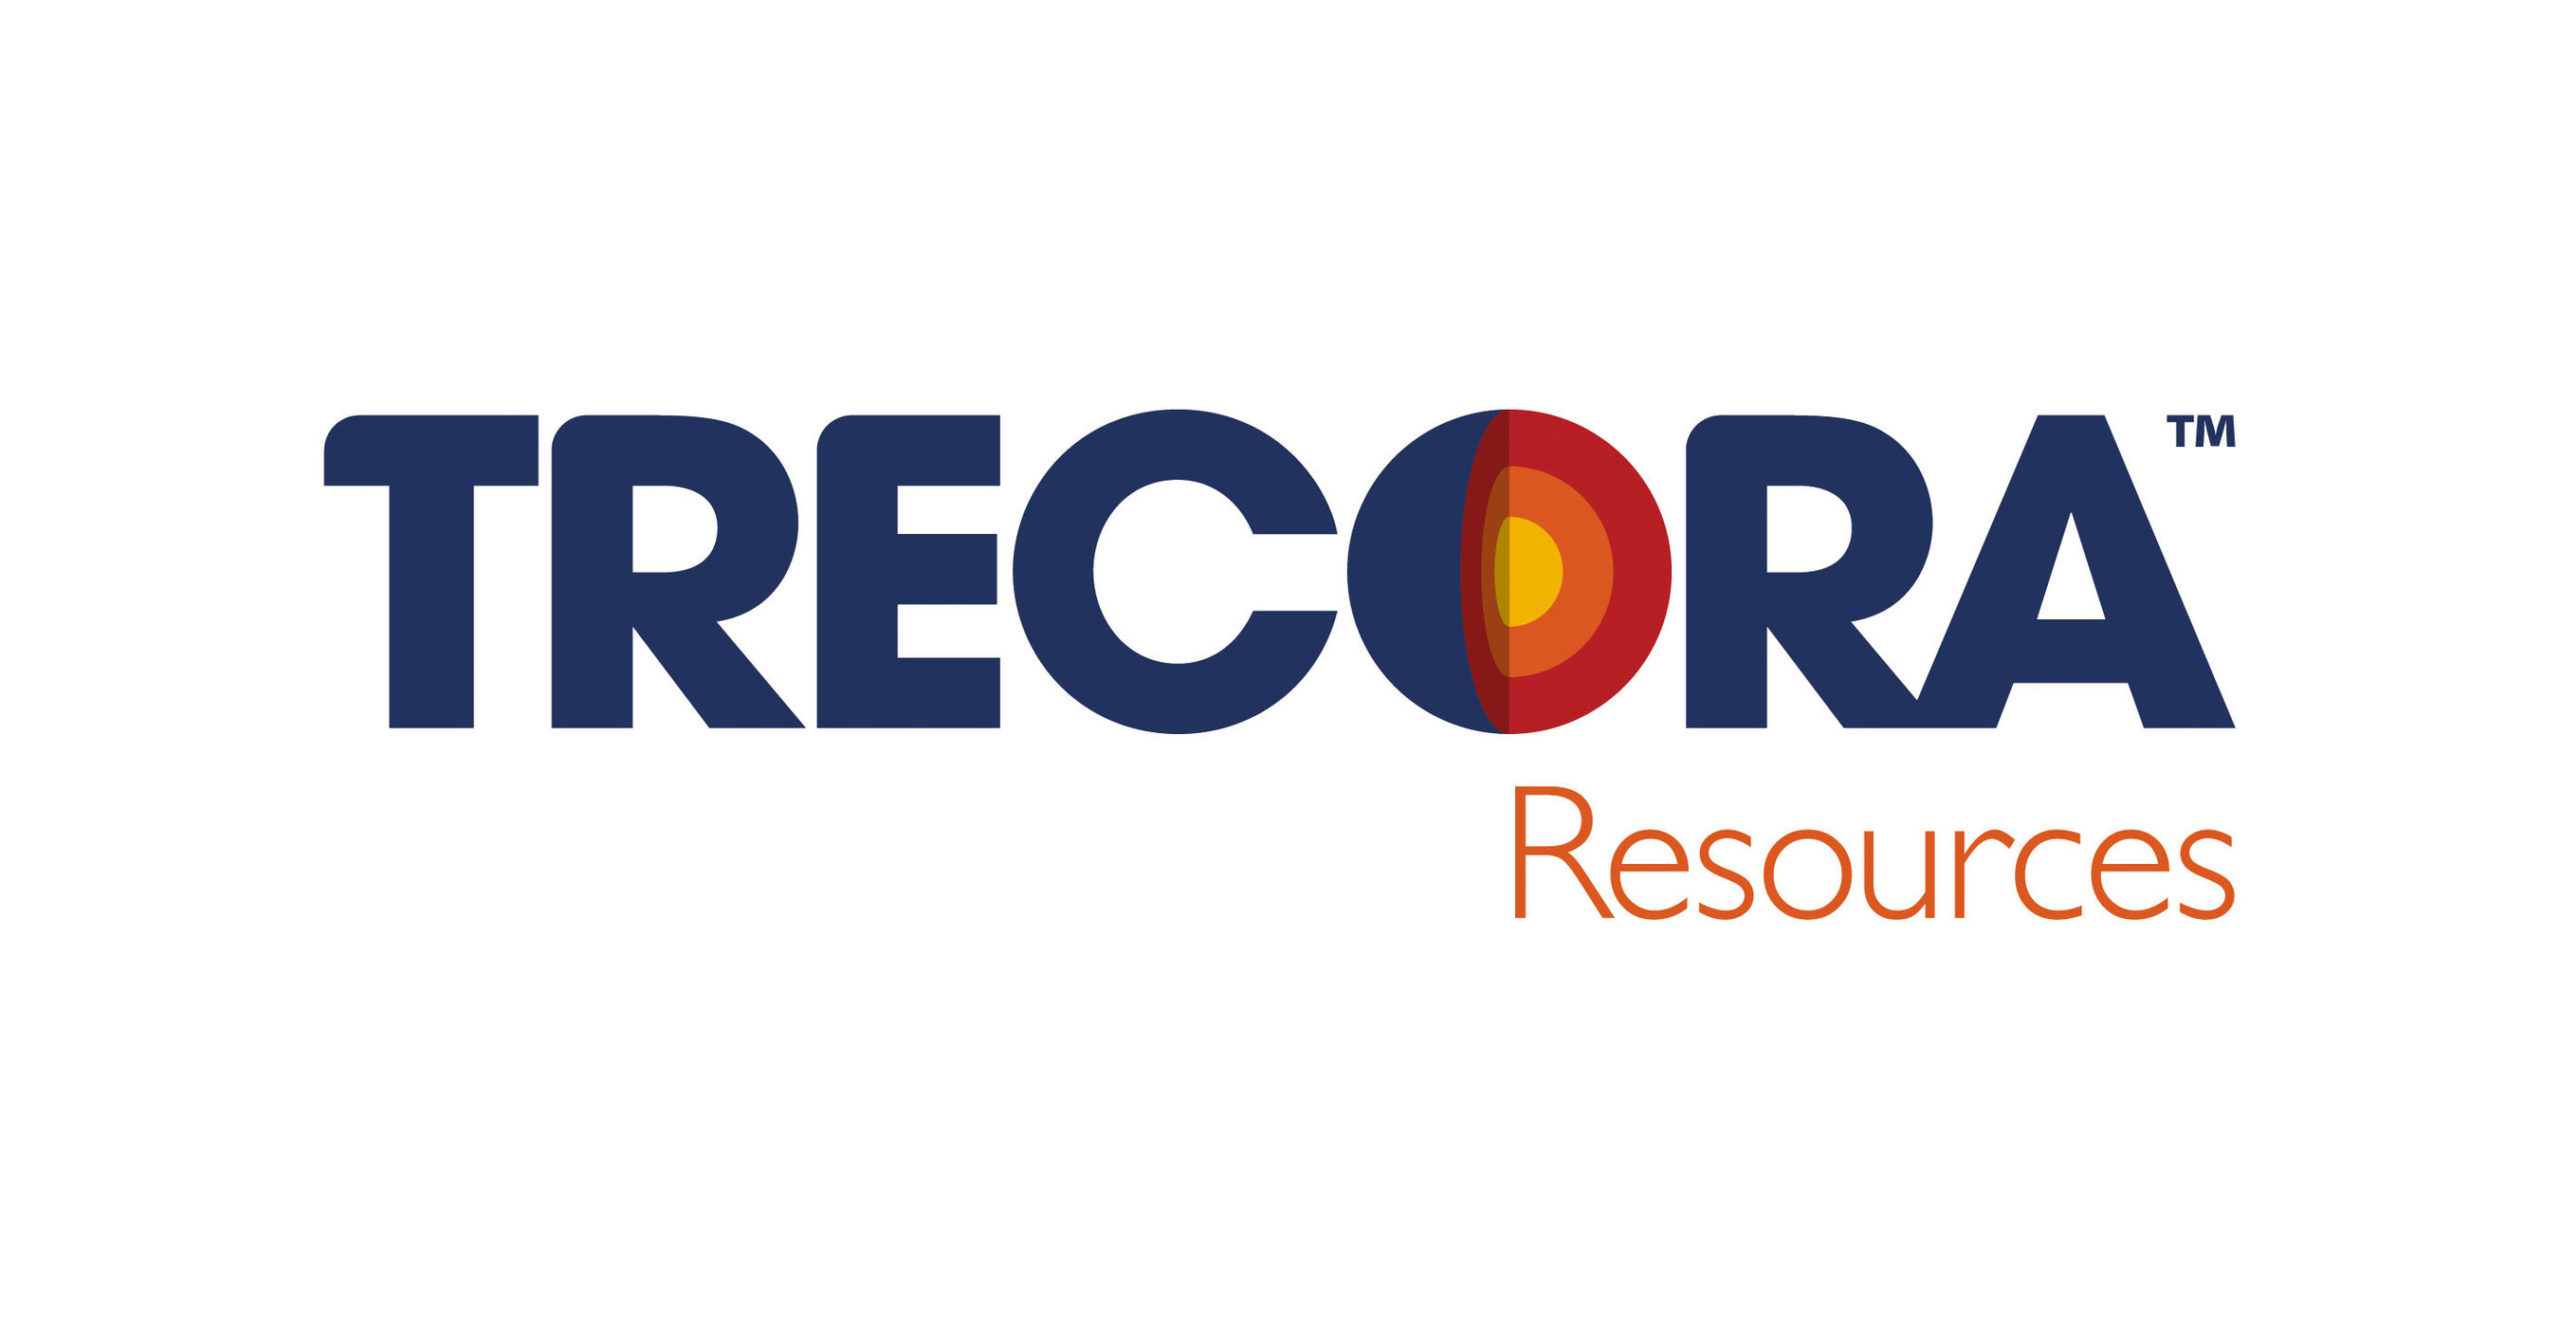 Trecora Announces Receipt of $14.6 Million U.S. Income Tax Refund Under CARES Act